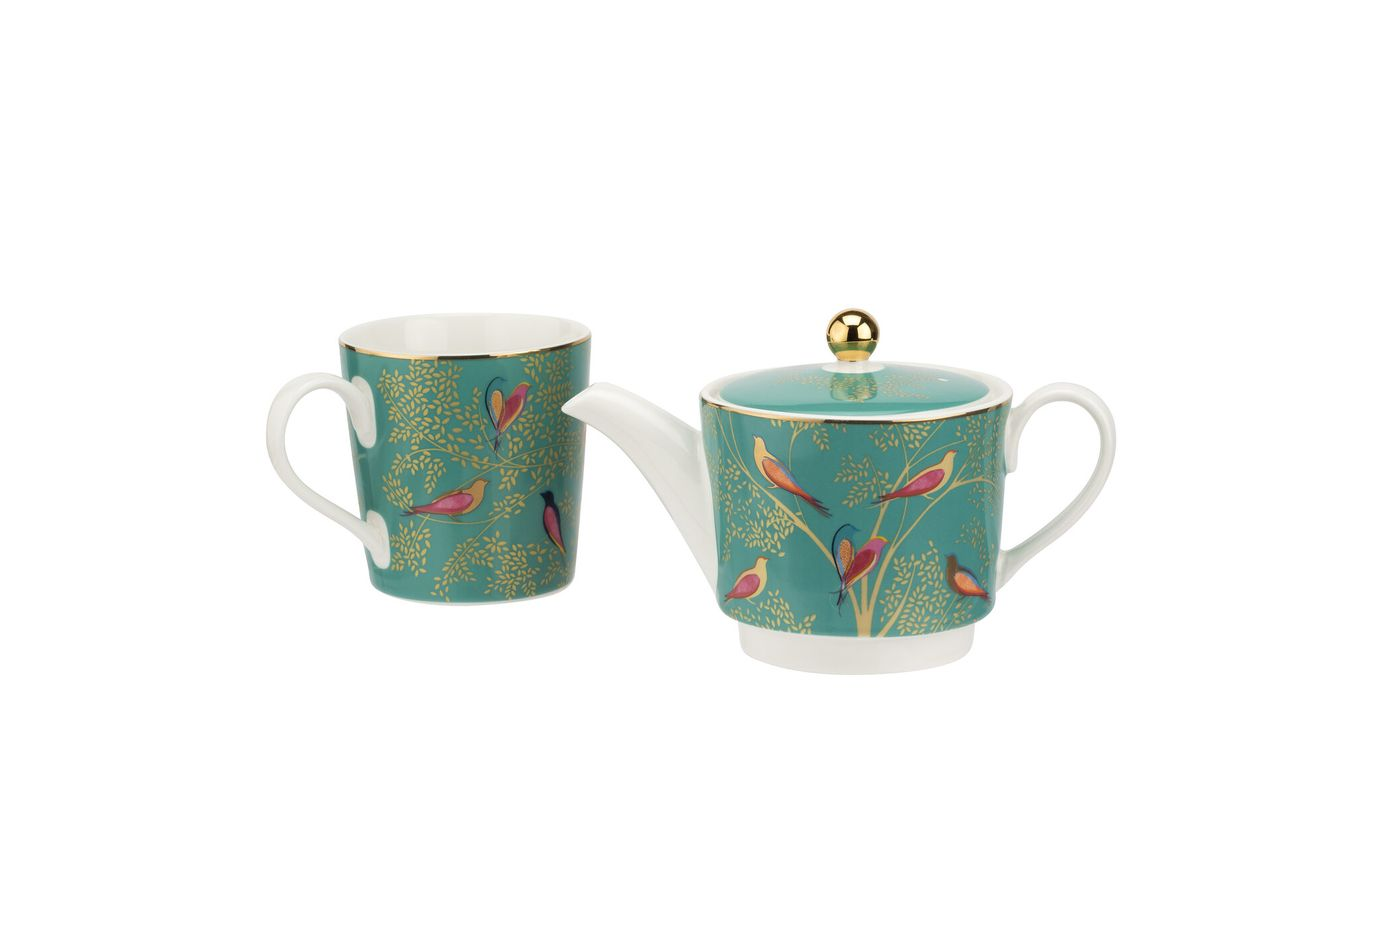 Sara Miller London for Portmeirion Chelsea Collection Tea For One Green 0.35l thumb 3